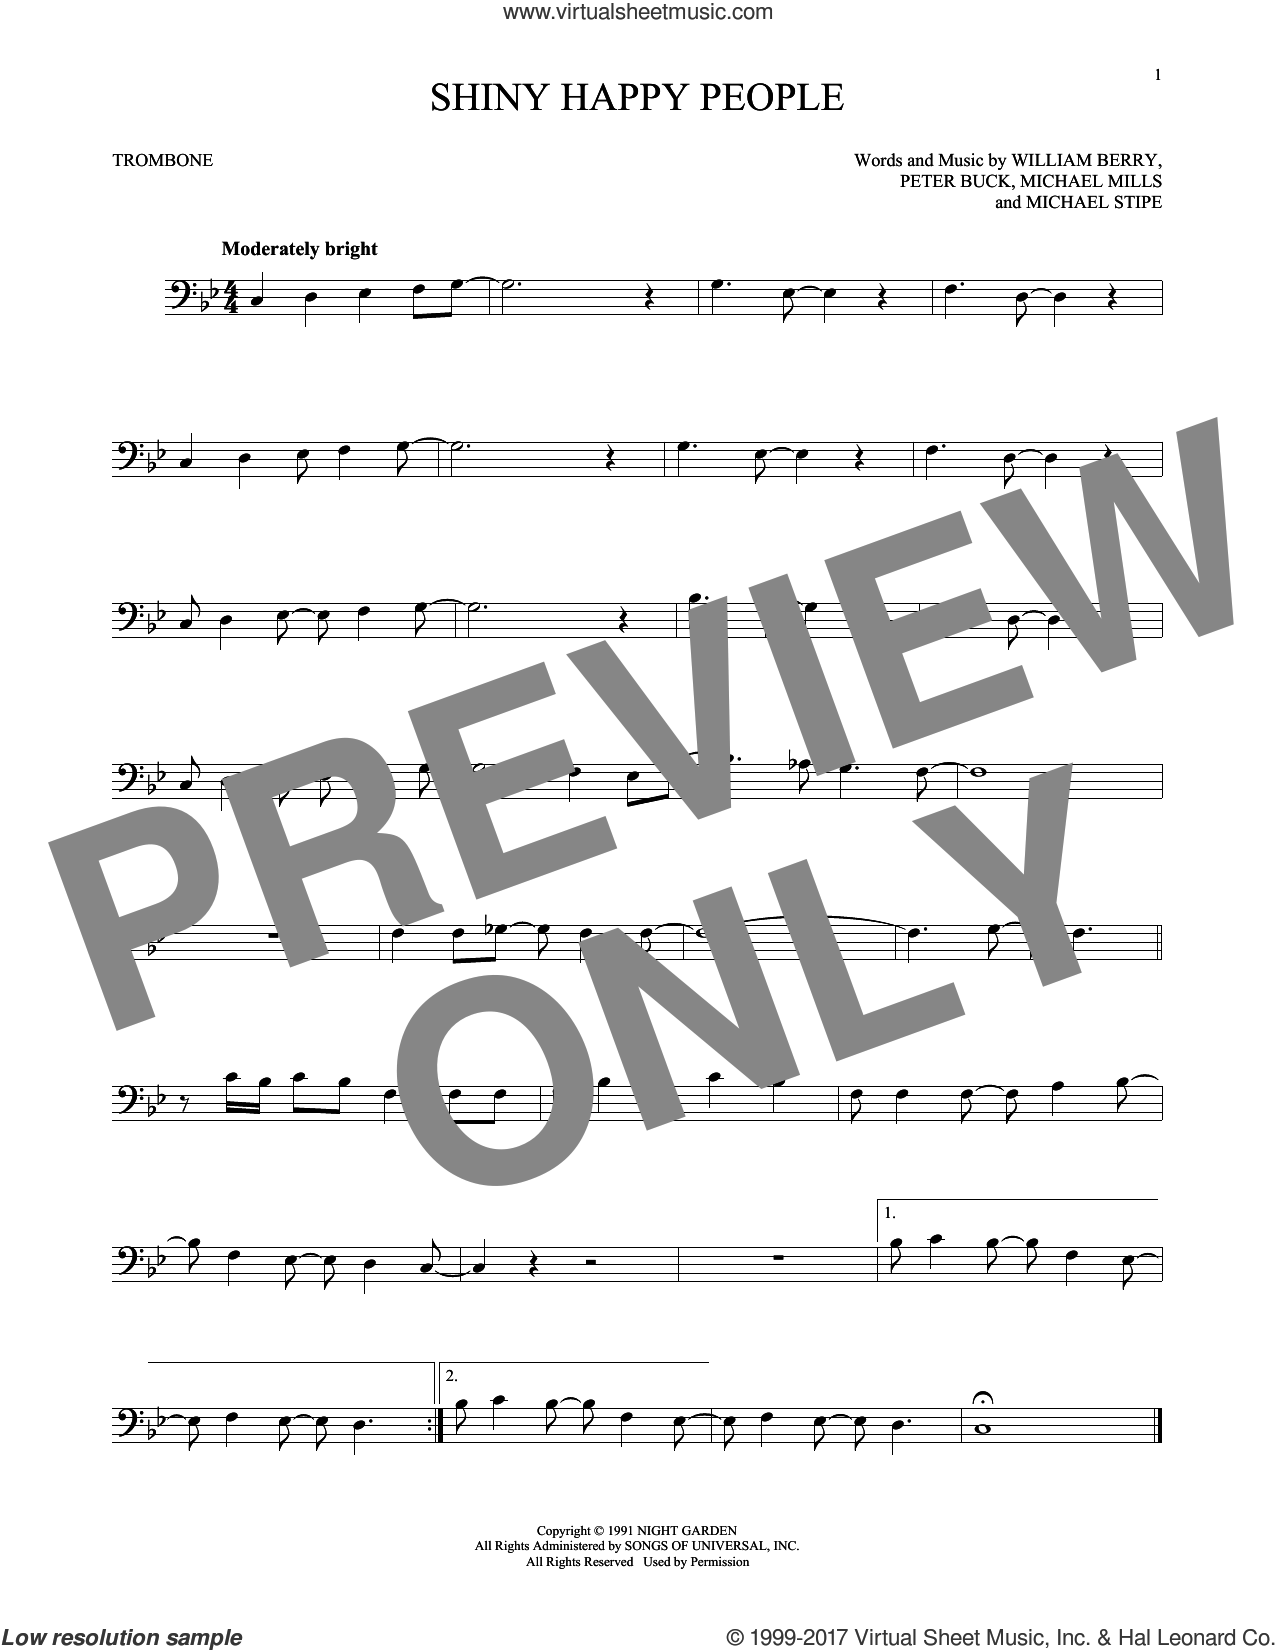 Shiny Happy People sheet music for trombone solo by R.E.M., Michael Stipe, Mike Mills, Peter Buck and William Berry, intermediate skill level